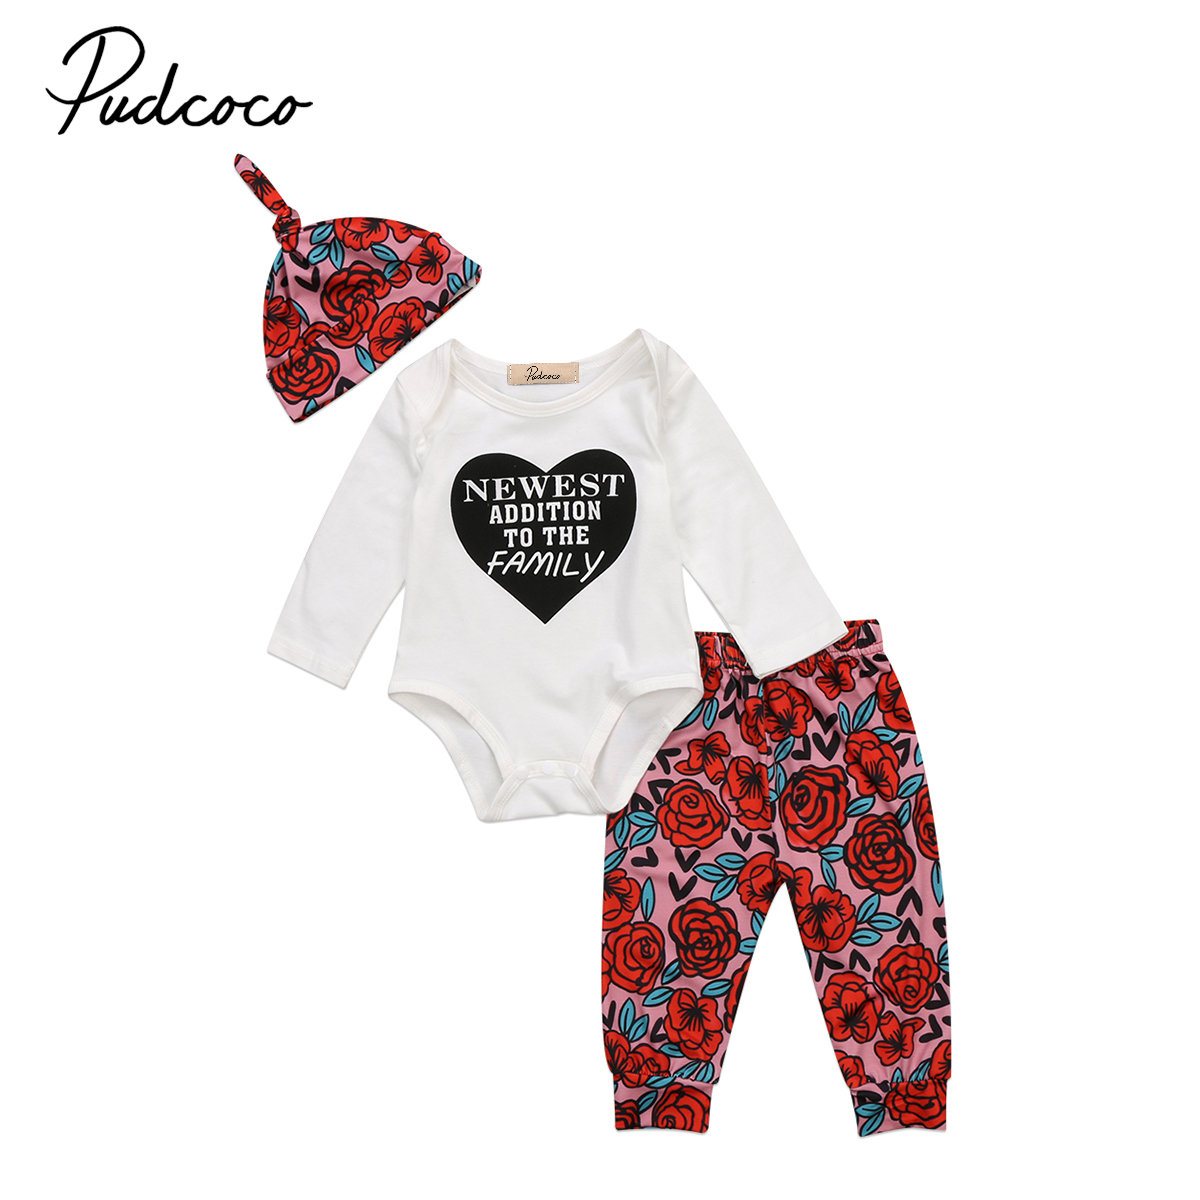 Cute Newborn Baby Girls Clothes Letter Print Top Romper Jumpsuit Floral Long Pants Leggings Hat Outfits Clothes Set 3pcs